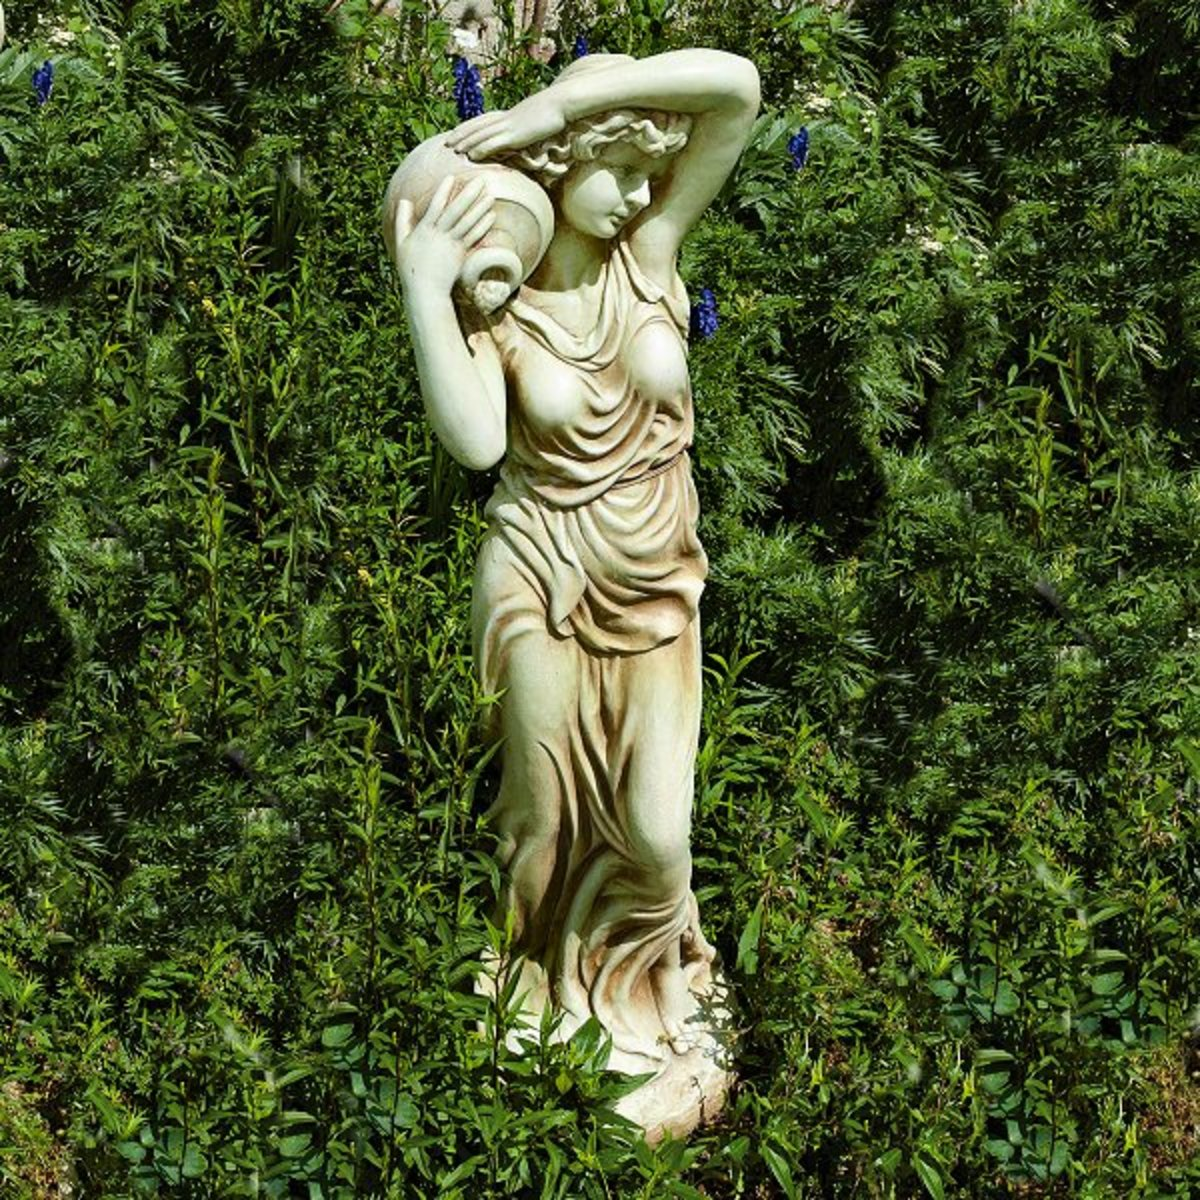 How to Make a New Garden Ornament Look Antique